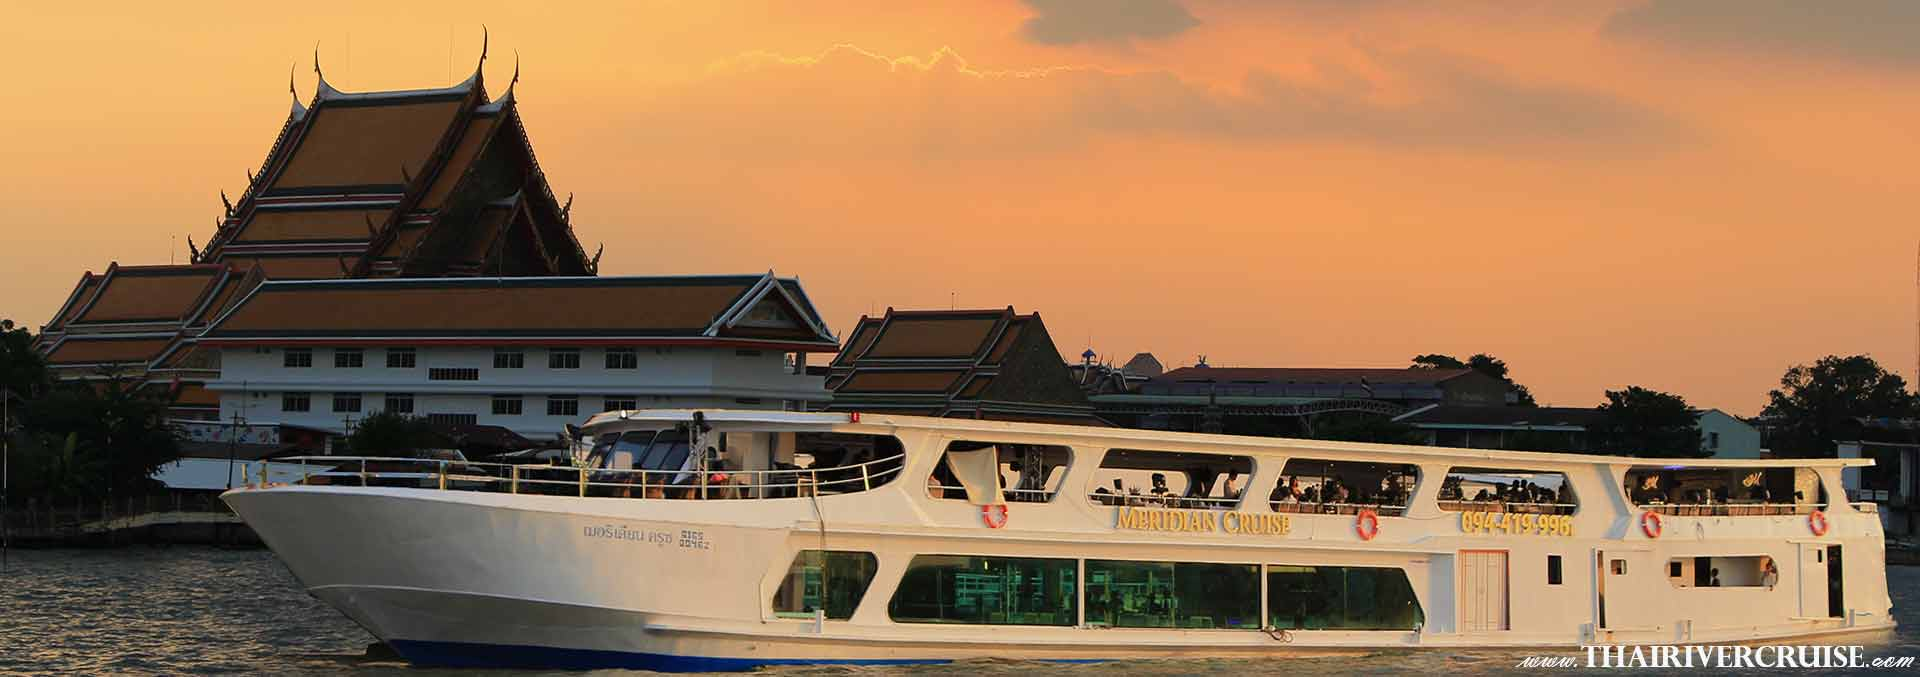 Meridian Cruise Sunset Dinner Cruise ฺBangkok, Promotion Discount Cheap Ticket Price Offers